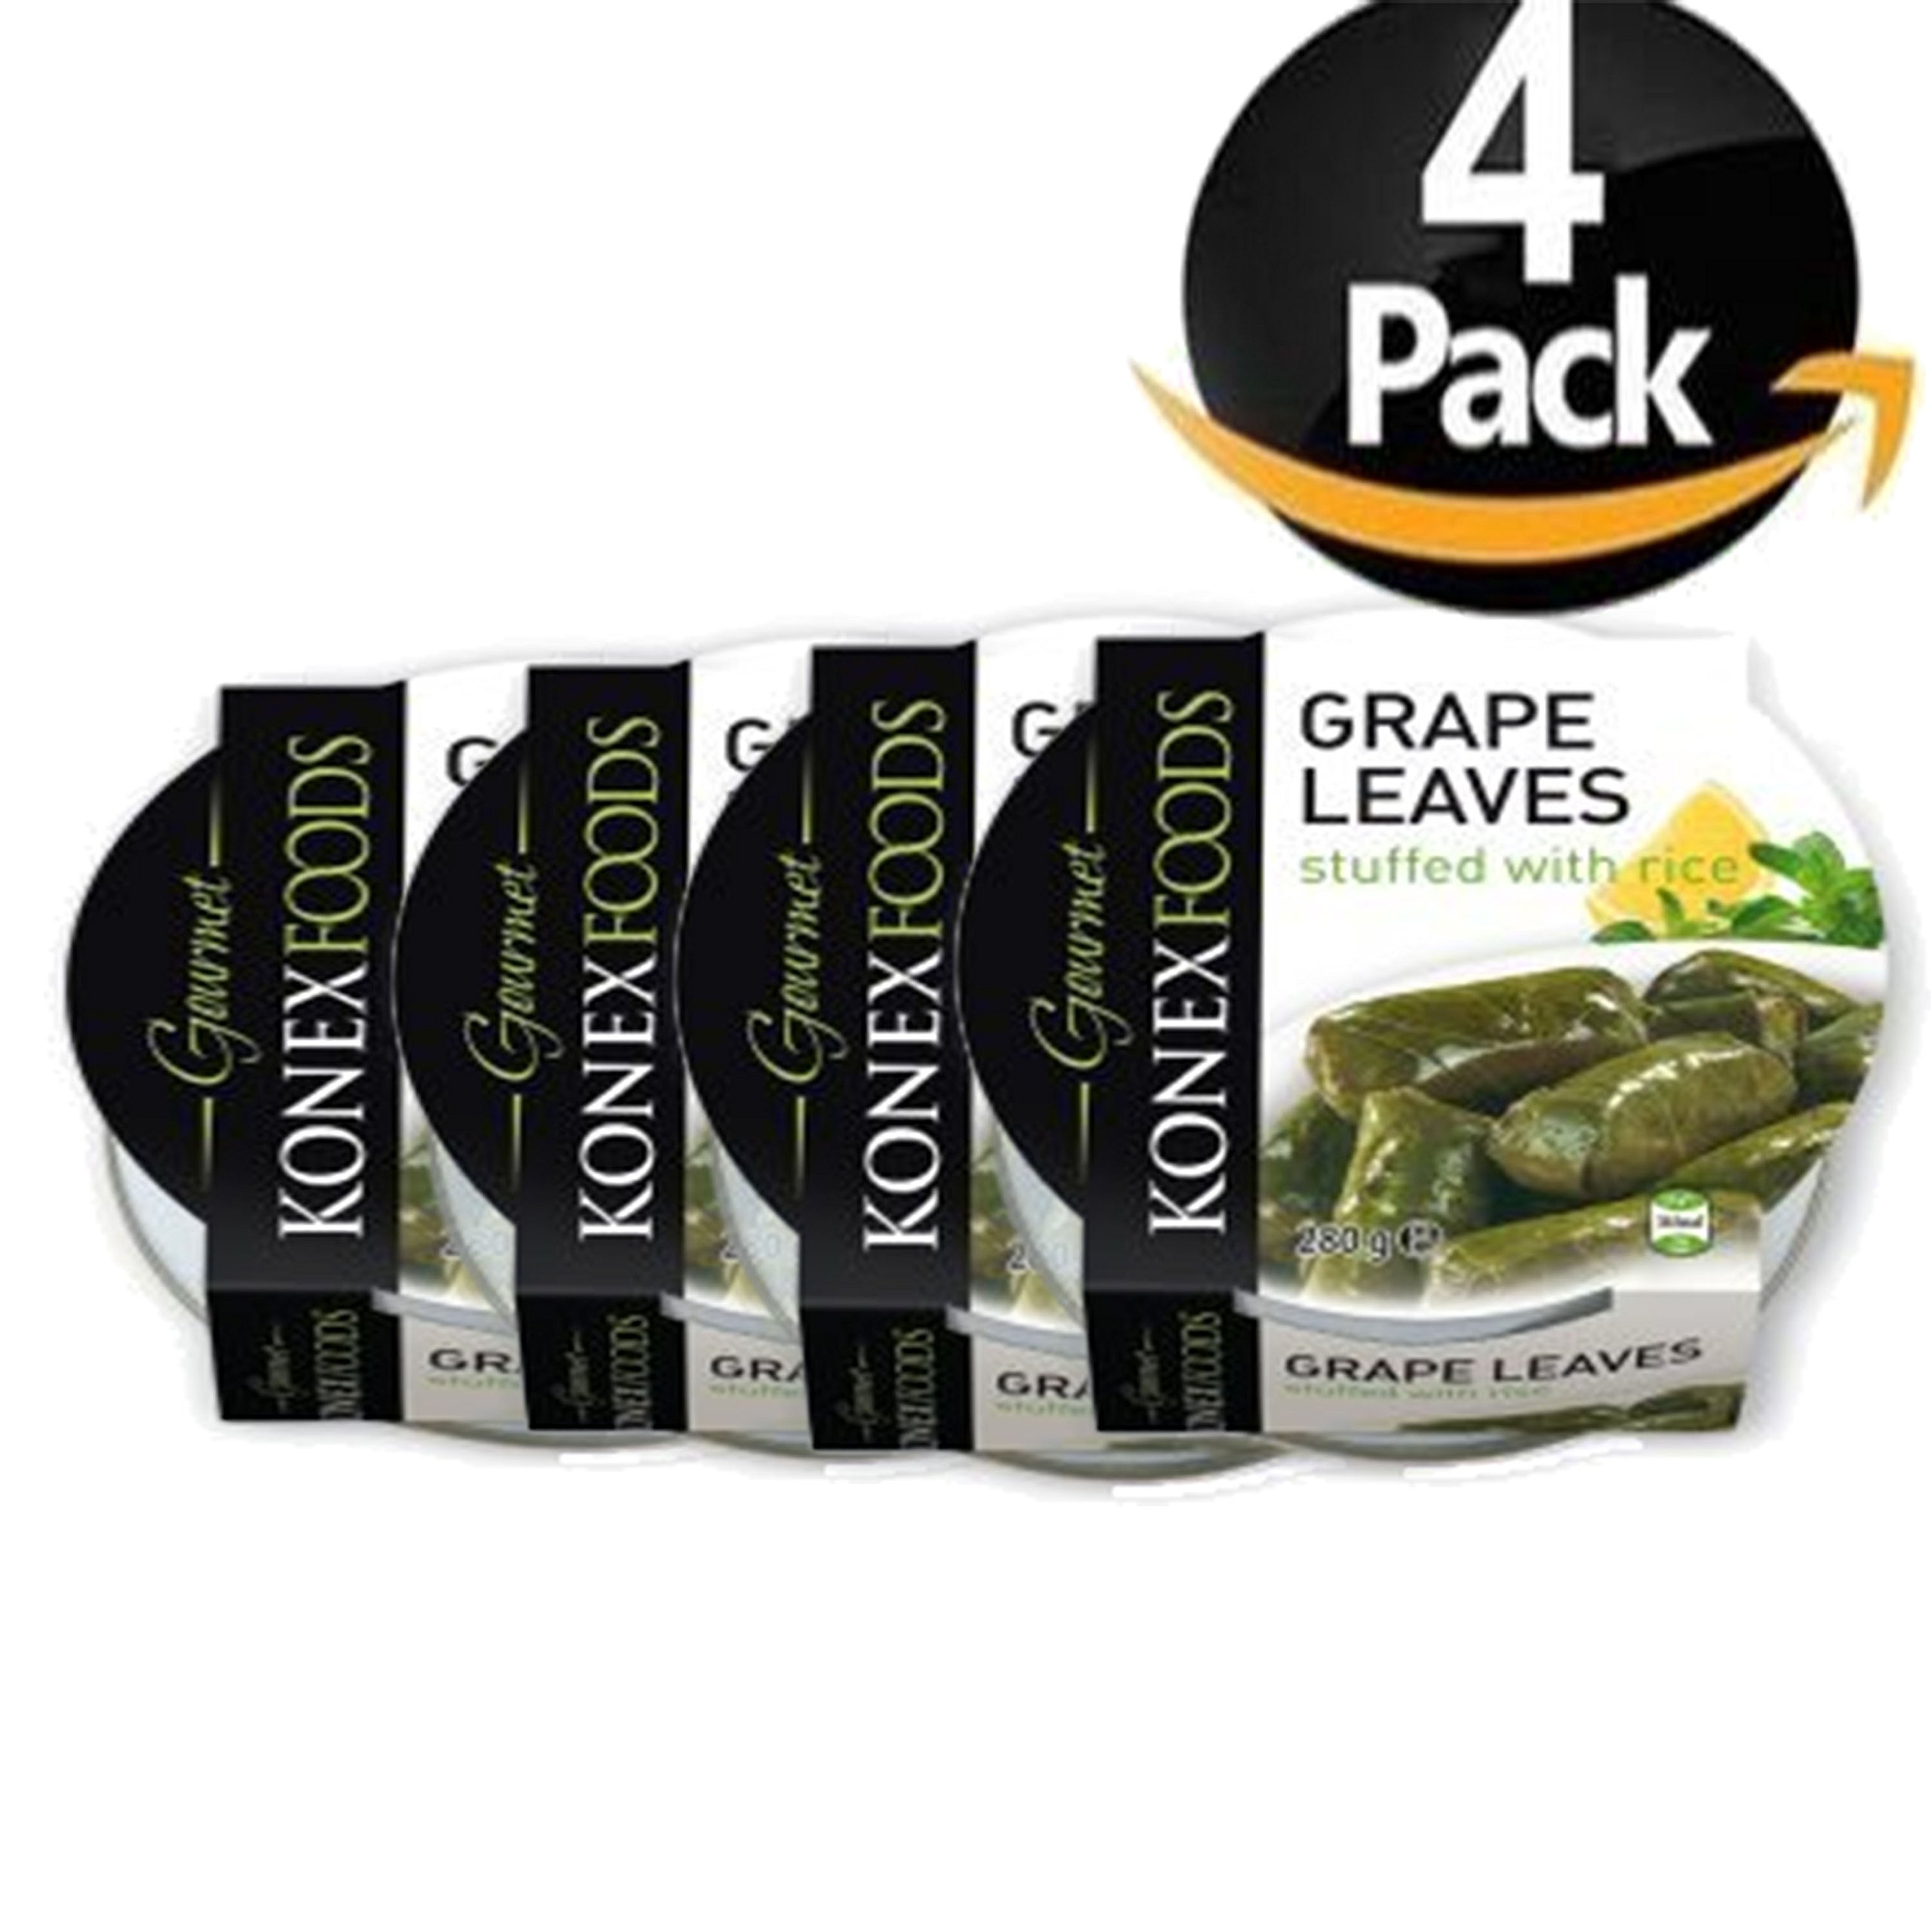 Konex Foods Grape Leaves Stuffed with Rice (Pack of 4) 9.9 oz each by Konex Foods Grape Leaves Stuffed with Rice